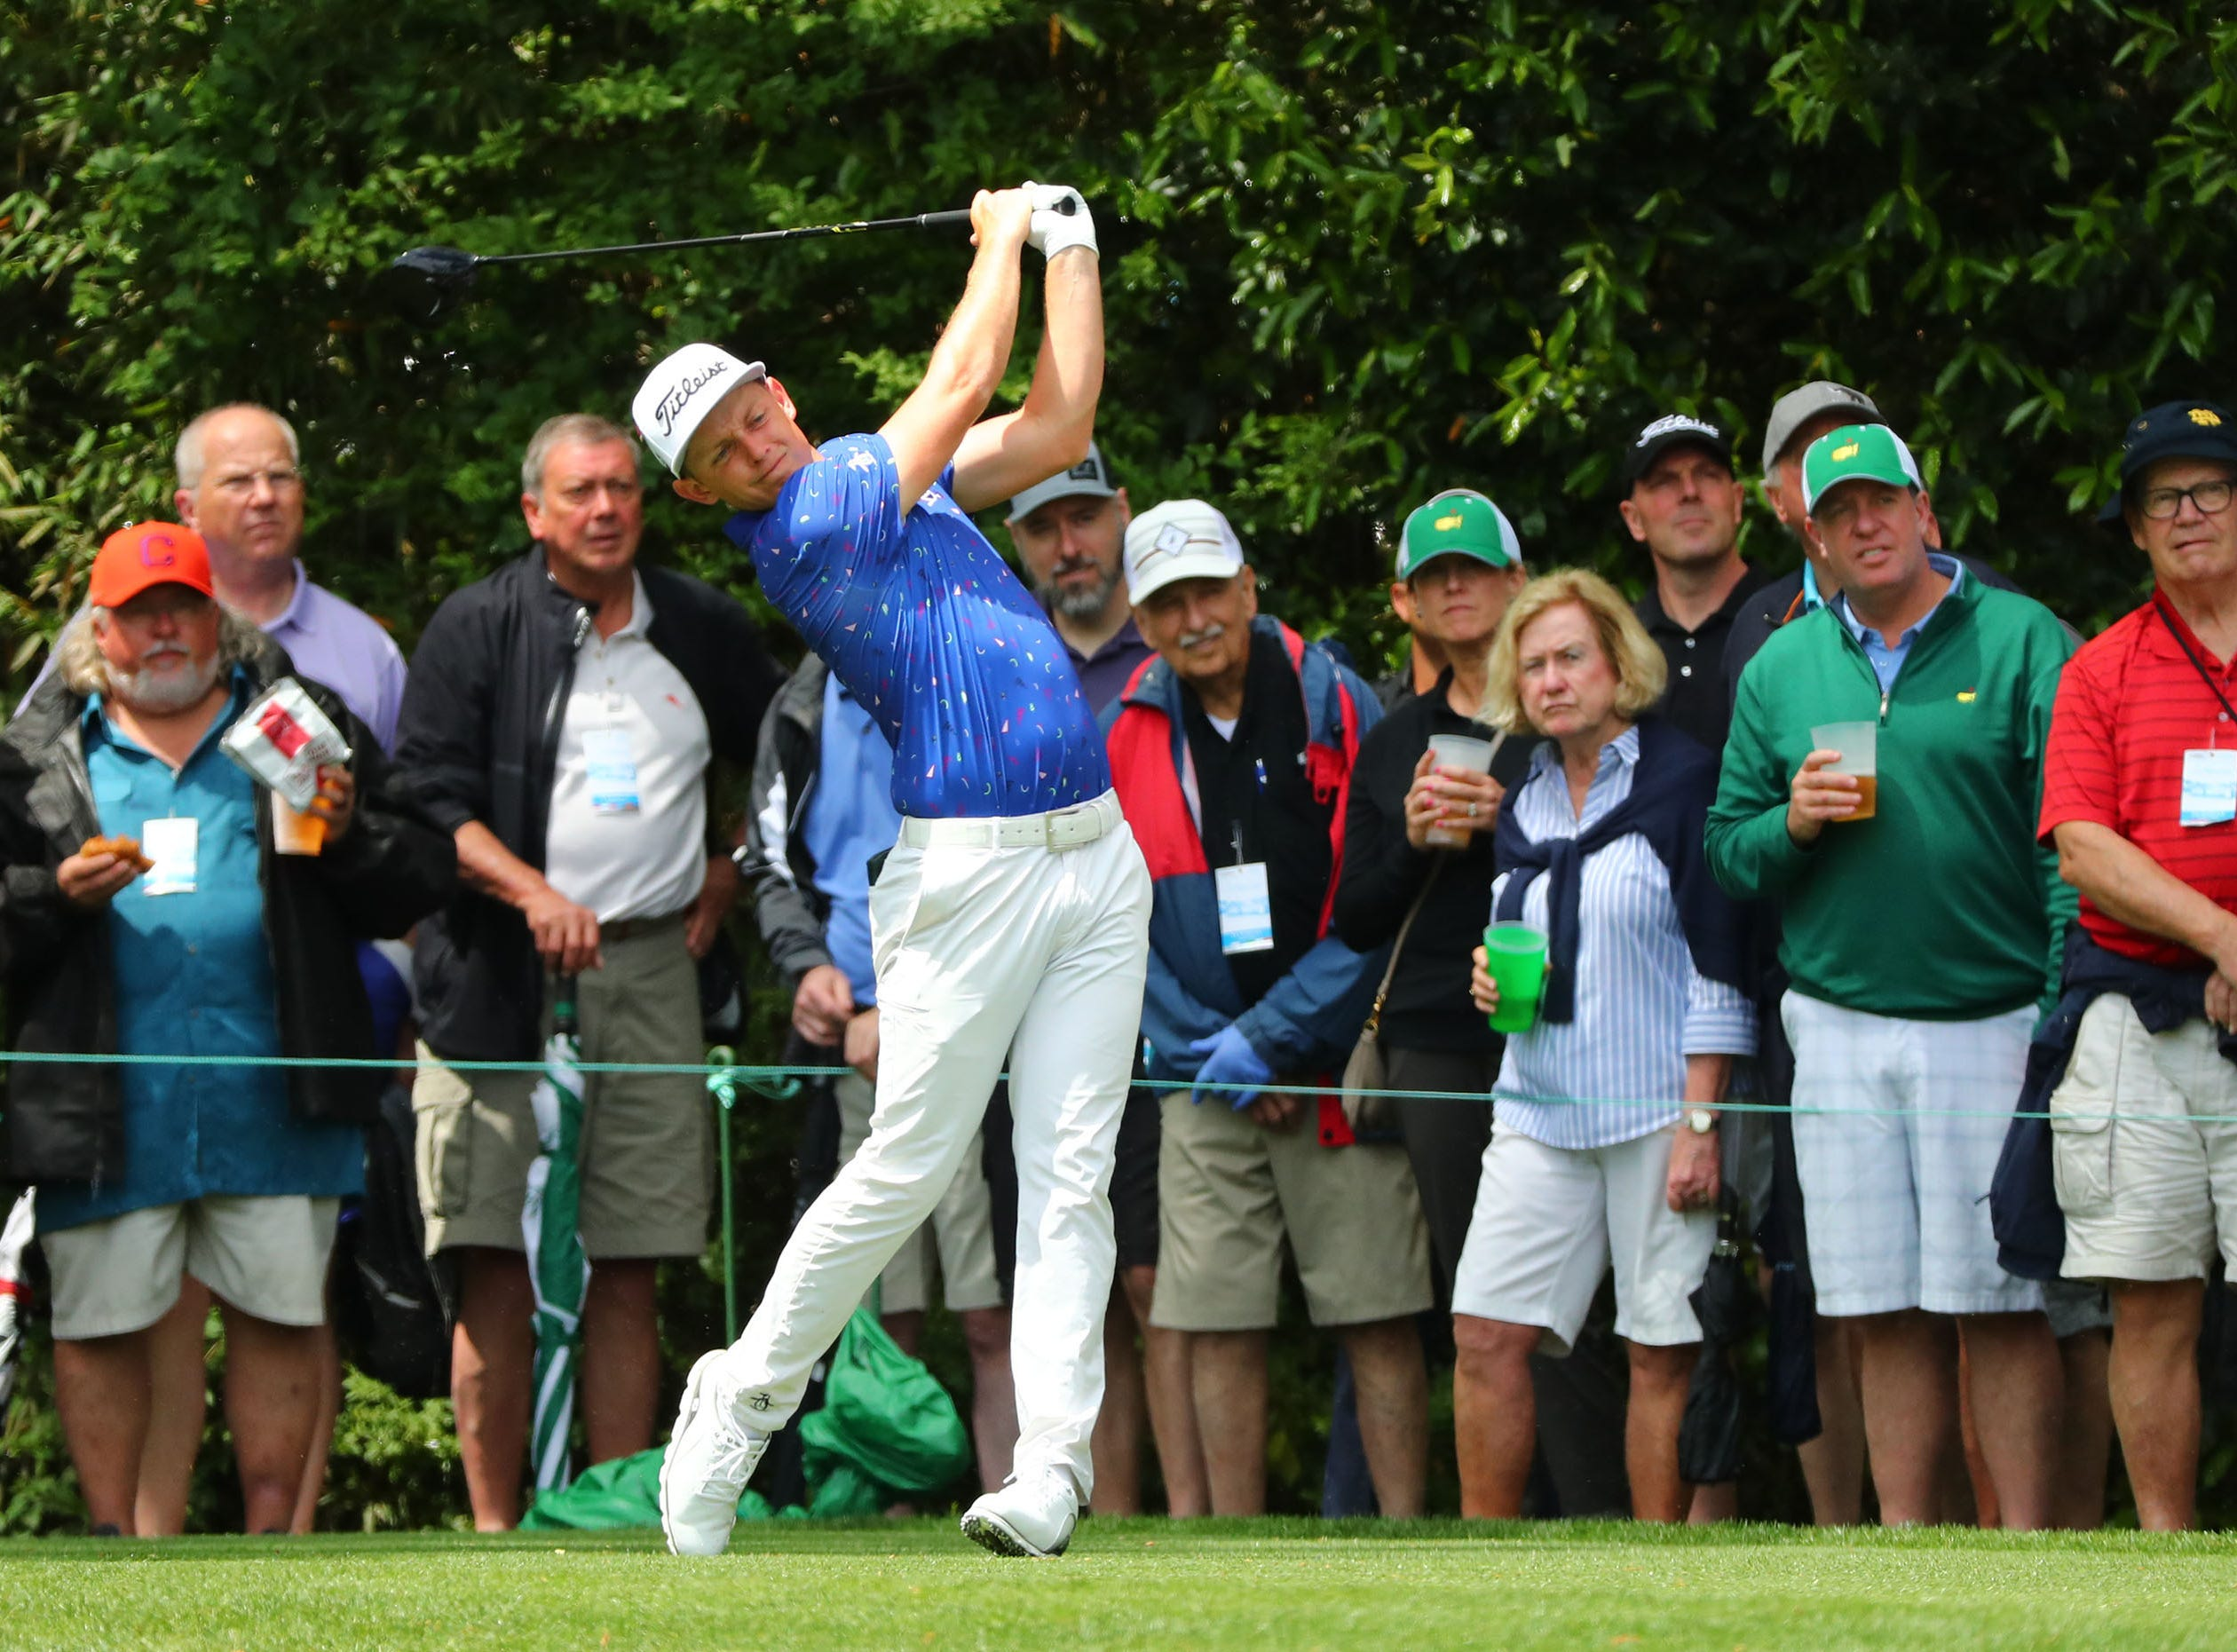 Apr 9, 2019; Augusta, GA, USA; Cameron Smith of Australia hits his drive on the 14th hole during a practice round for The Masters golf tournament at Augusta National Golf Club. Mandatory Credit: Rob Schumacher-USA TODAY Sports